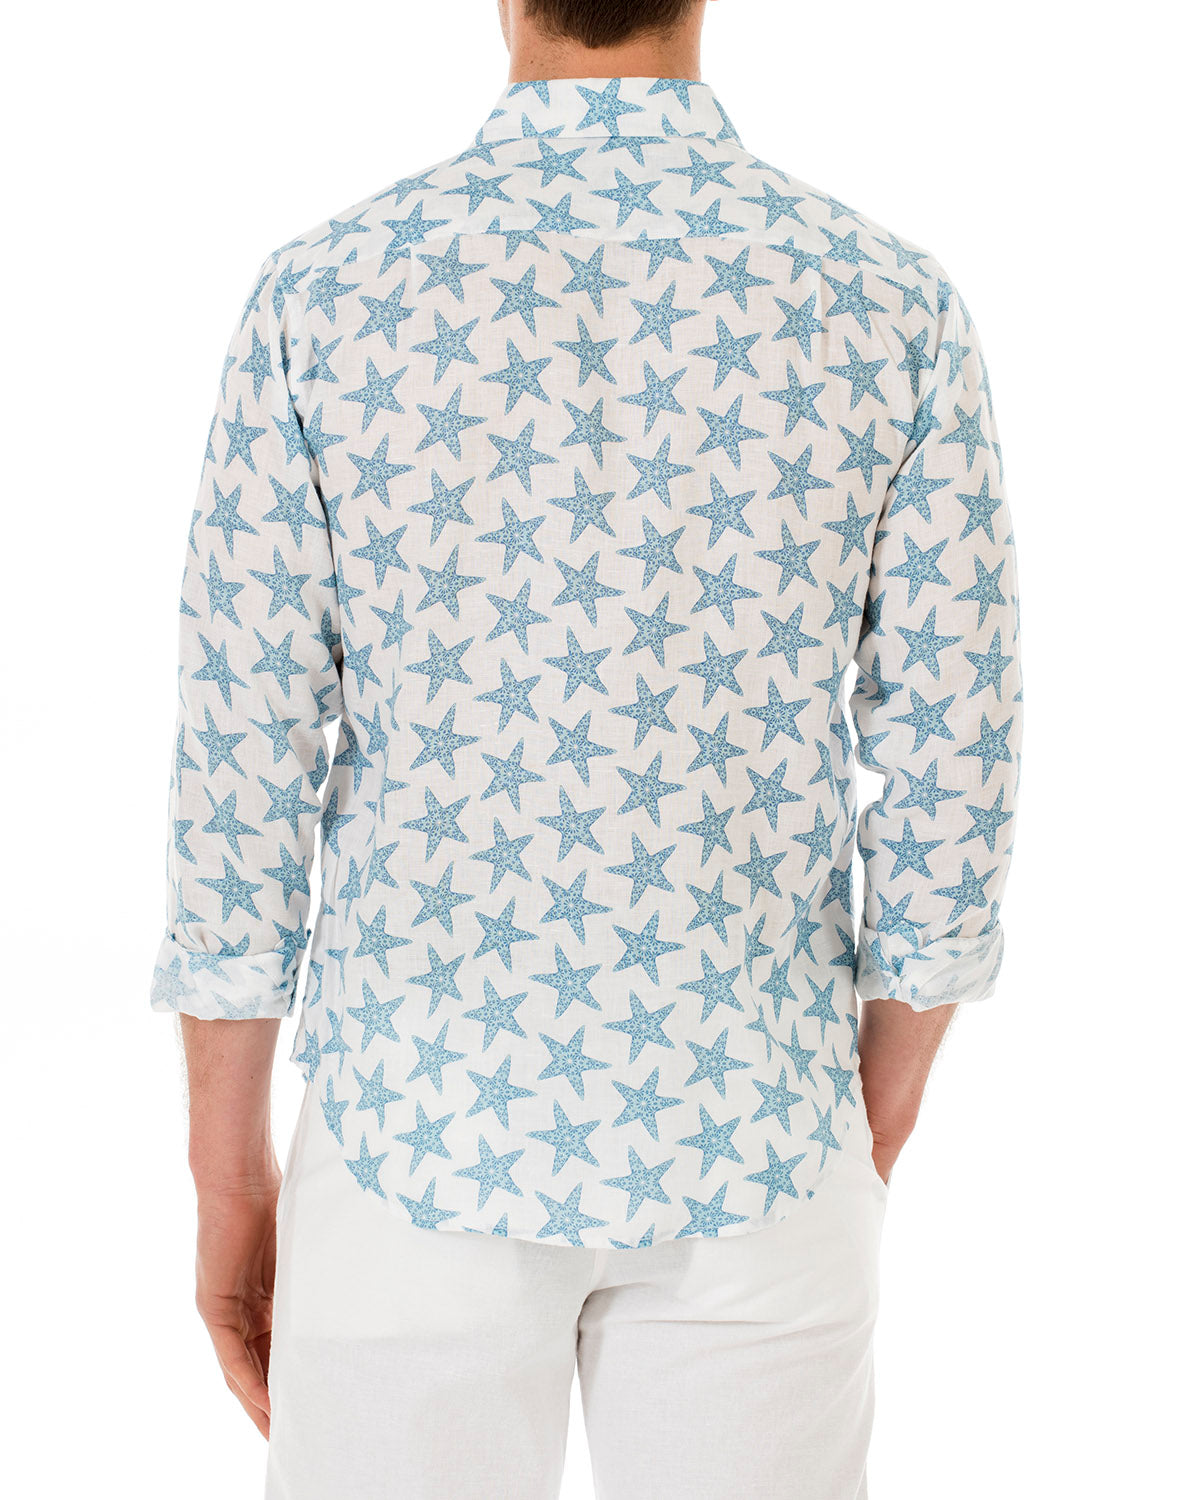 Mens Linen Shirt : SEASTAR - BLUE back